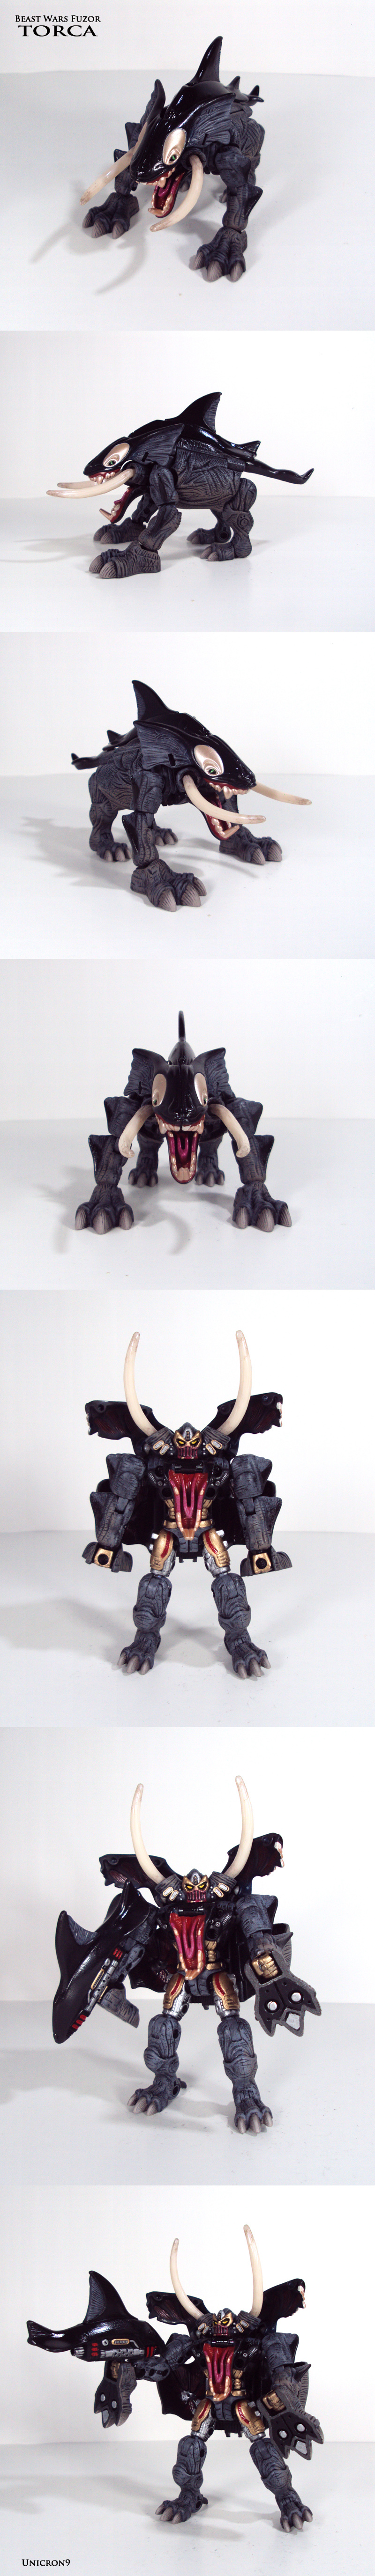 Beast Wars Fuzor: Torca by Unicron9